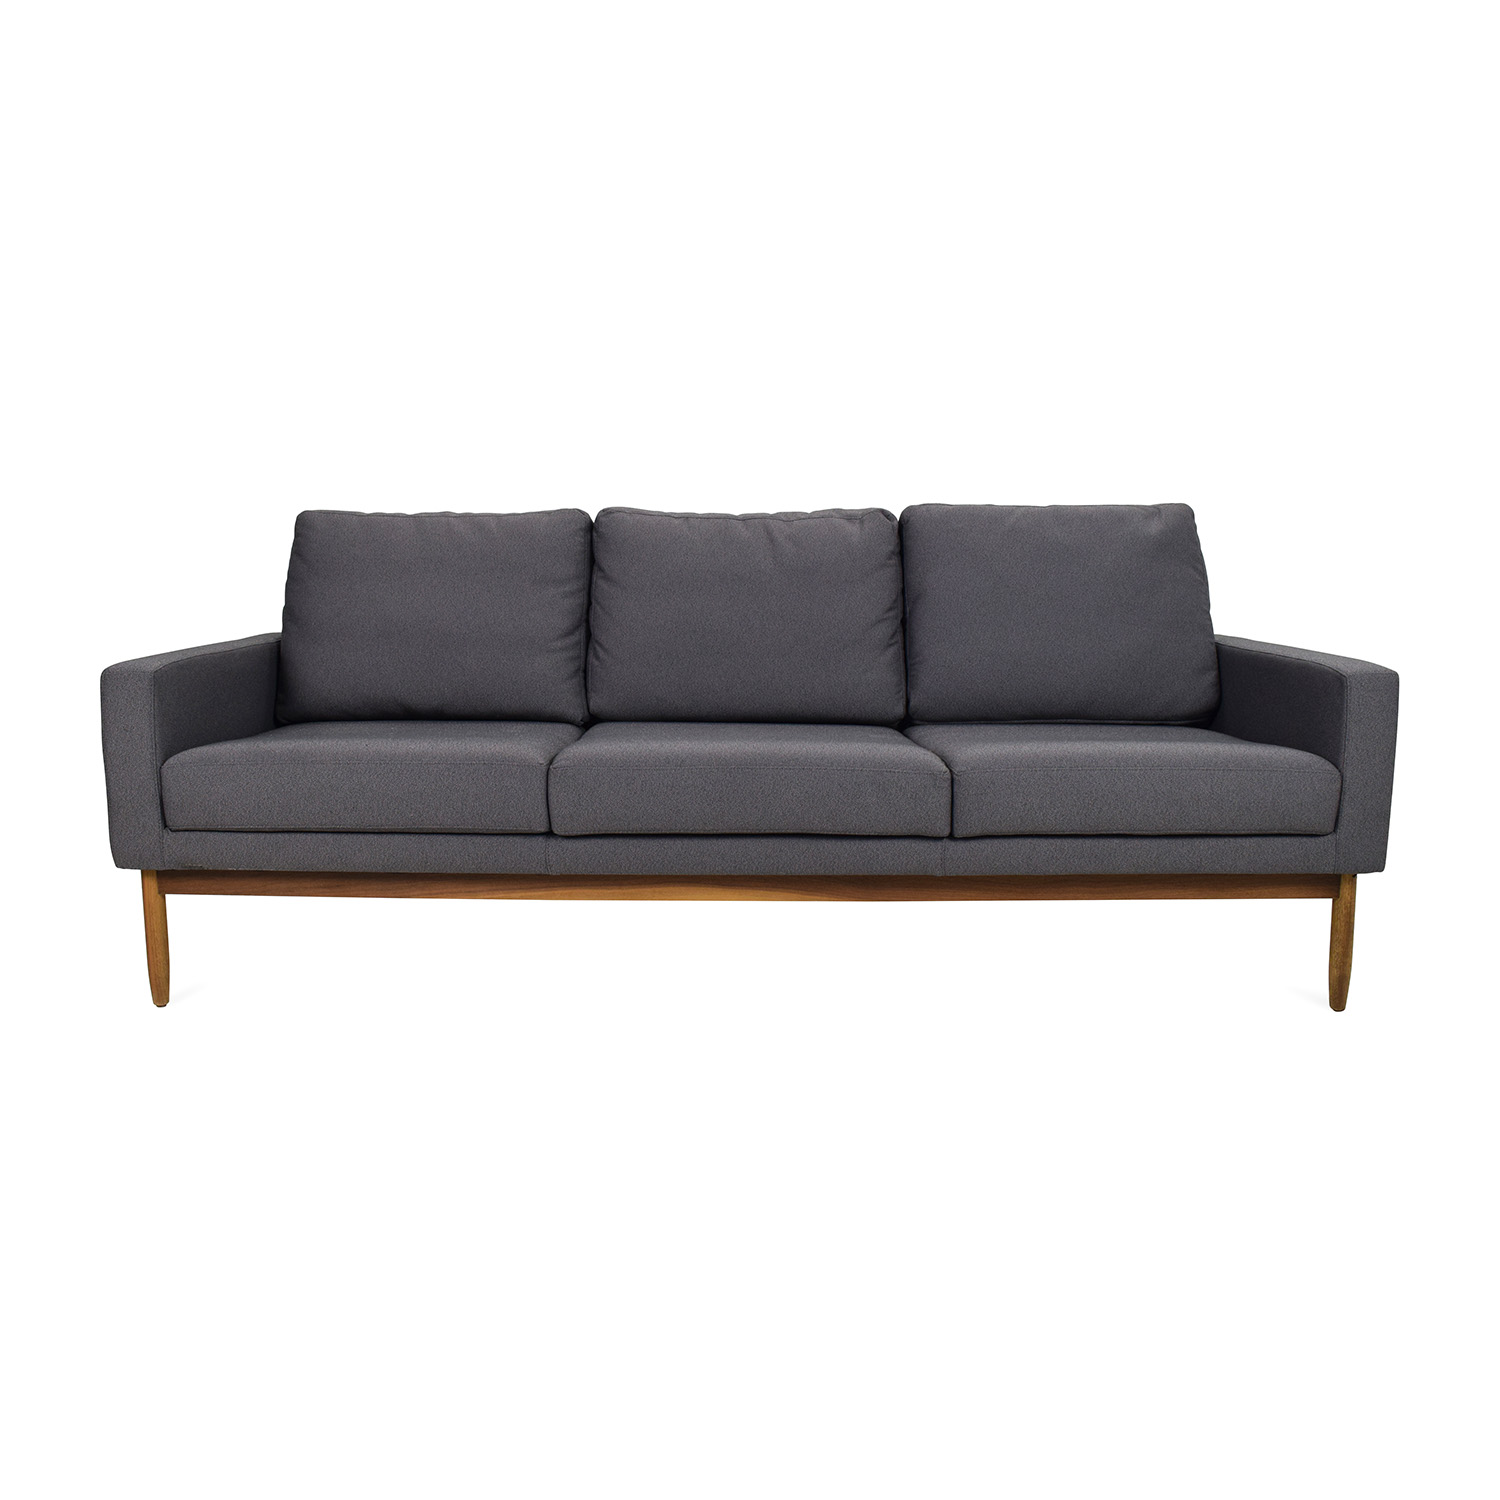 Design Within Reach Design Within Reach Raleigh Sofa price